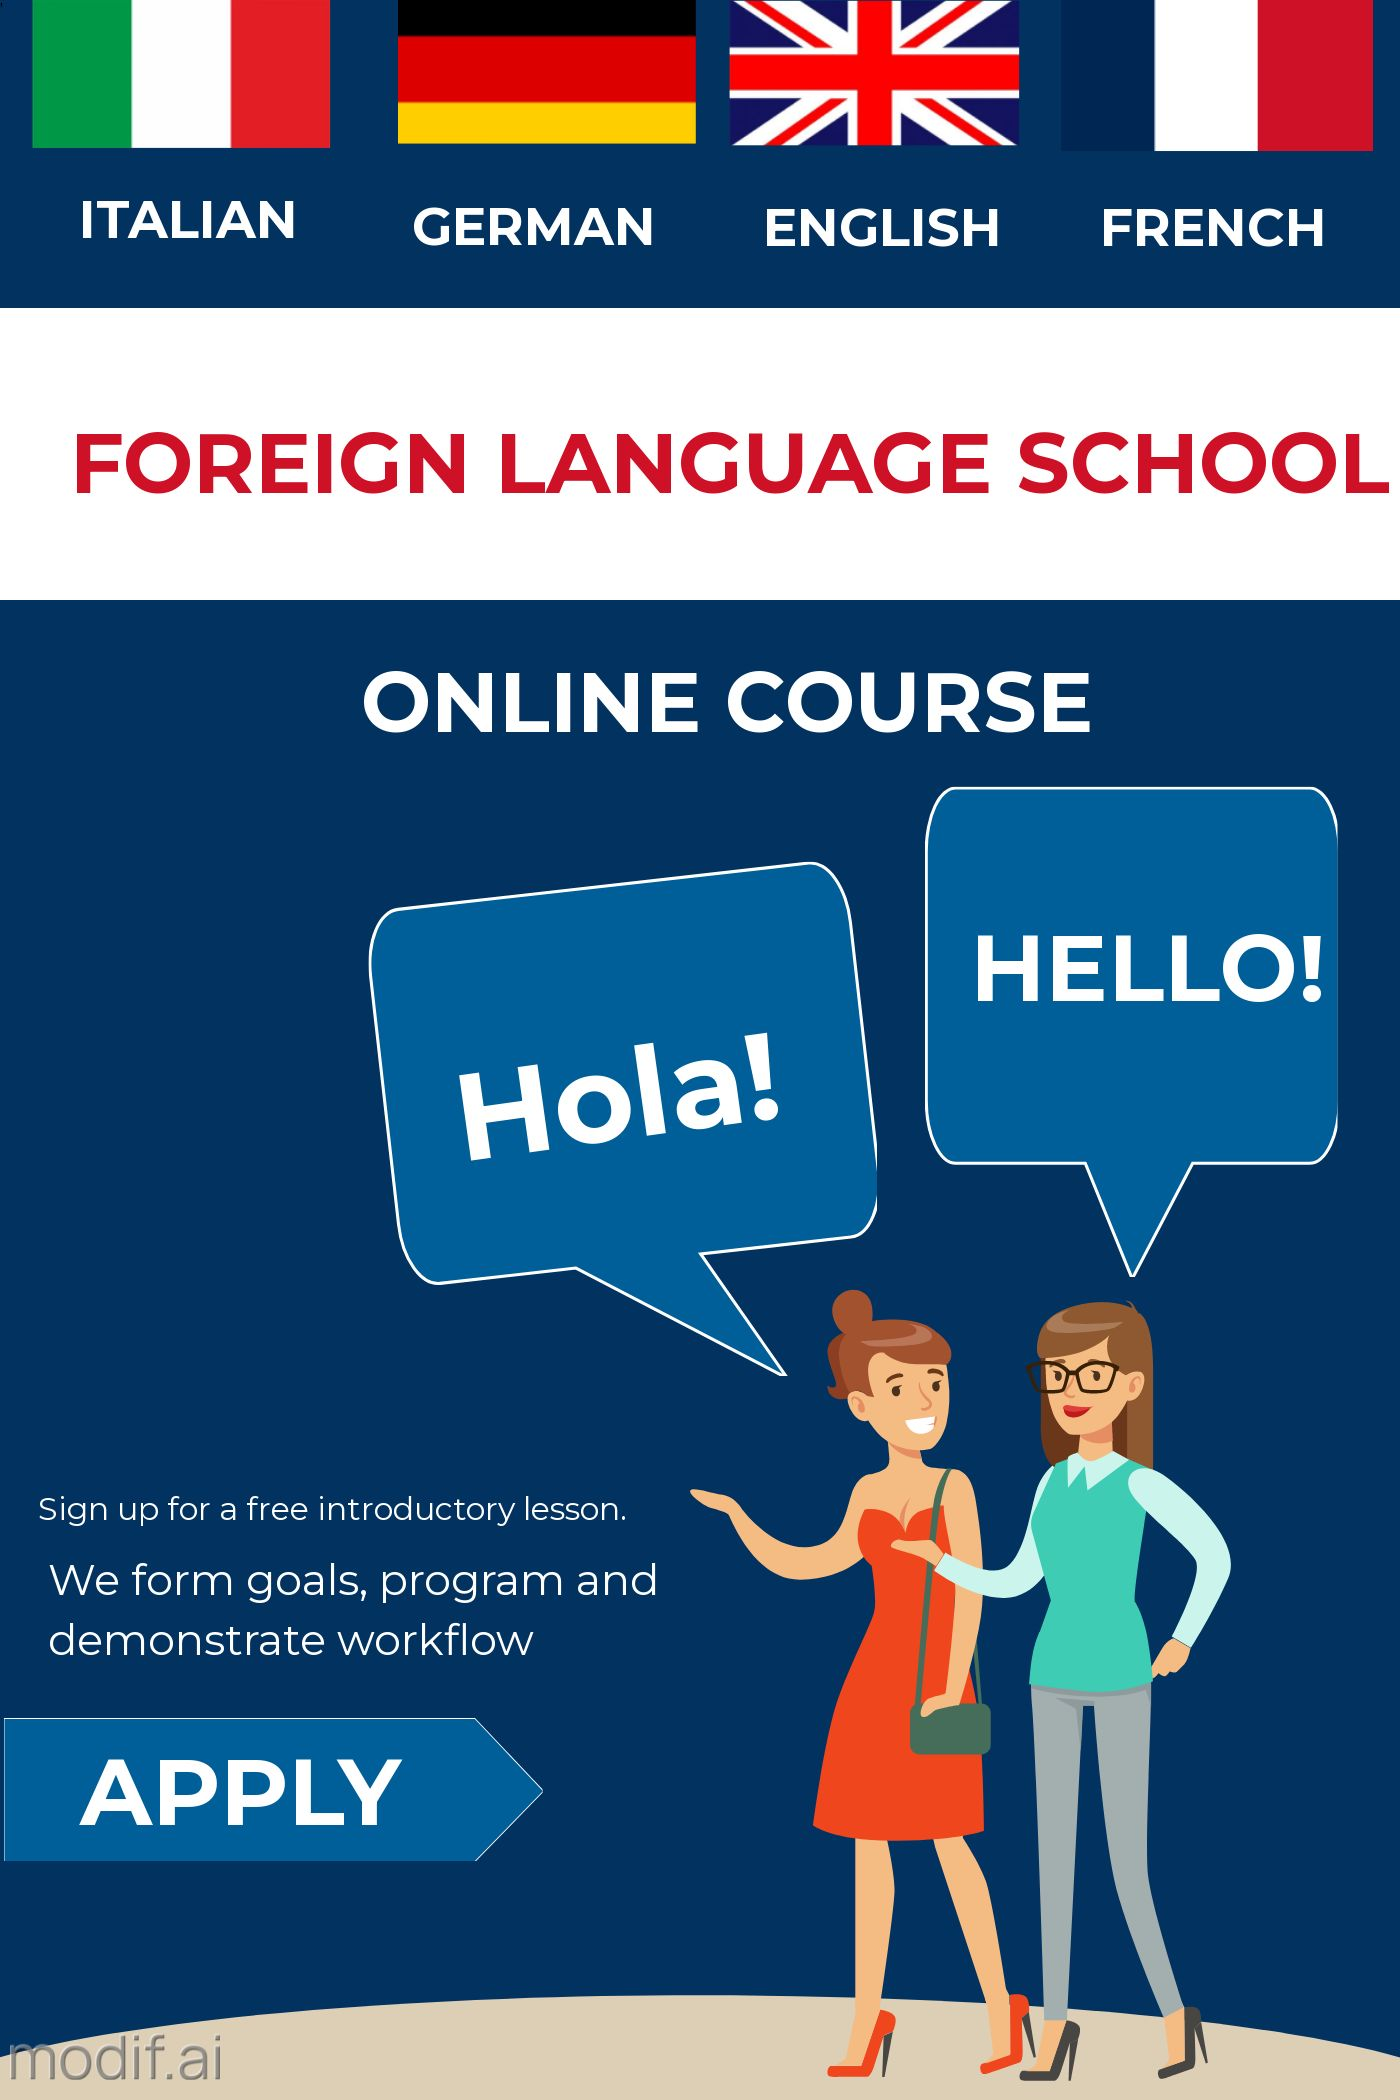 Foreign Language Online Course Template